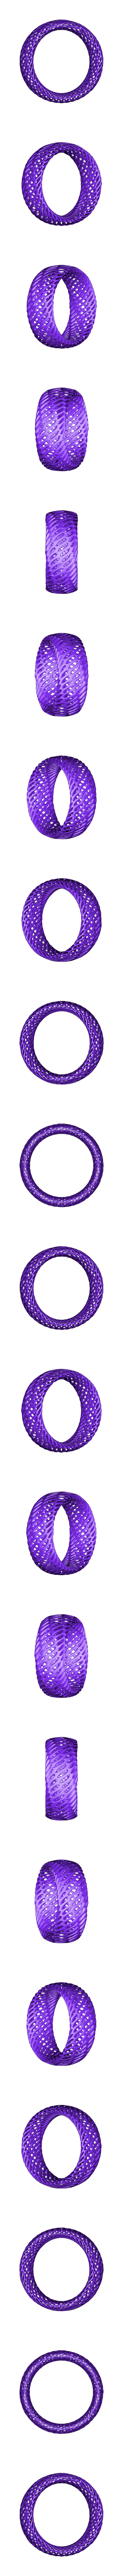 twisted_diagrid_bracelet_lower_quality.STL Download free STL file Twisted Diagrid Bracelet • 3D printable object, O3D